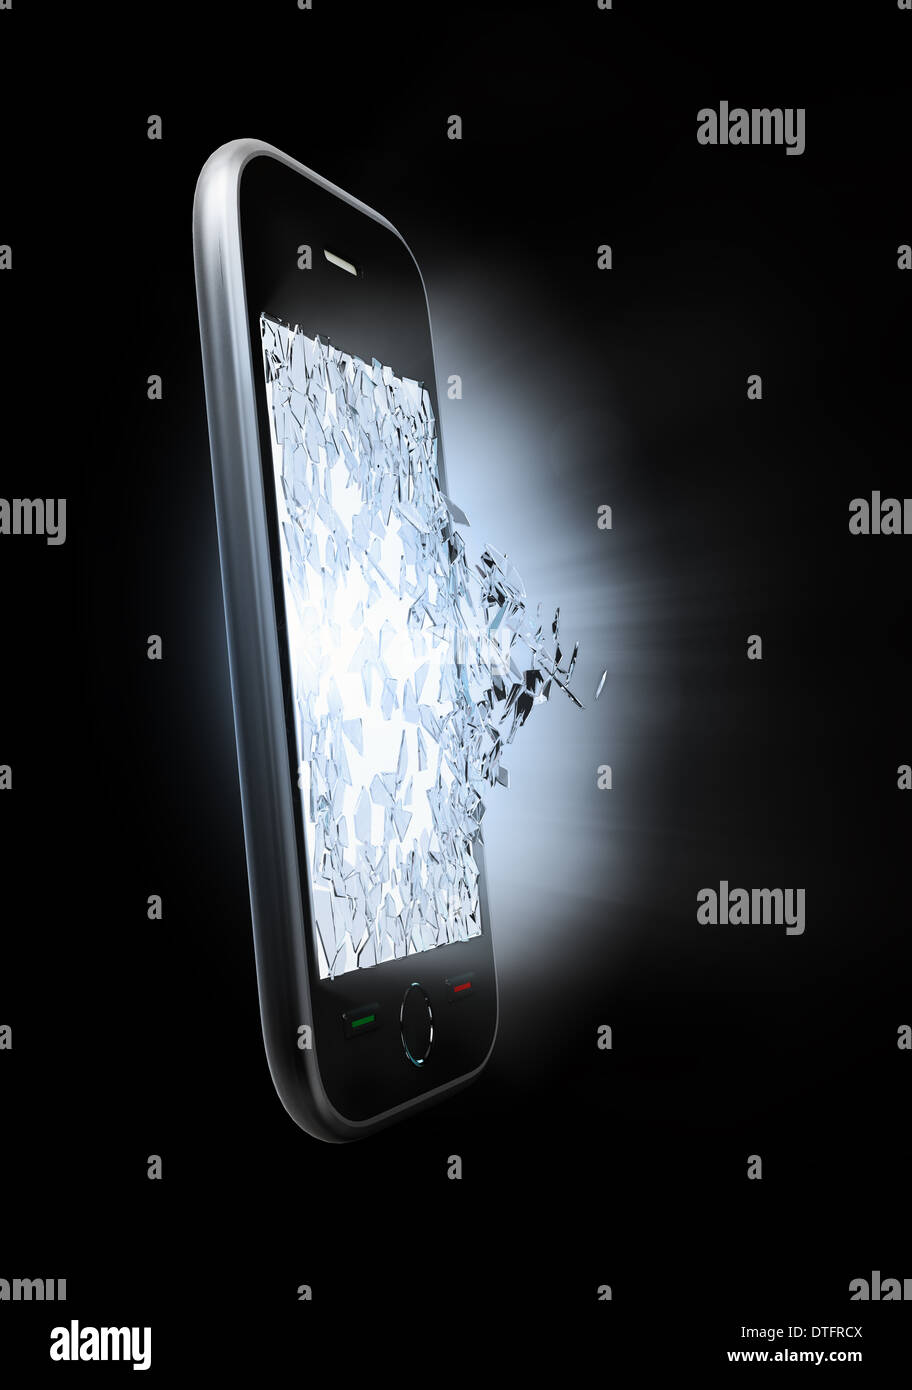 A smart phone display screen being shattered  - Stock Image